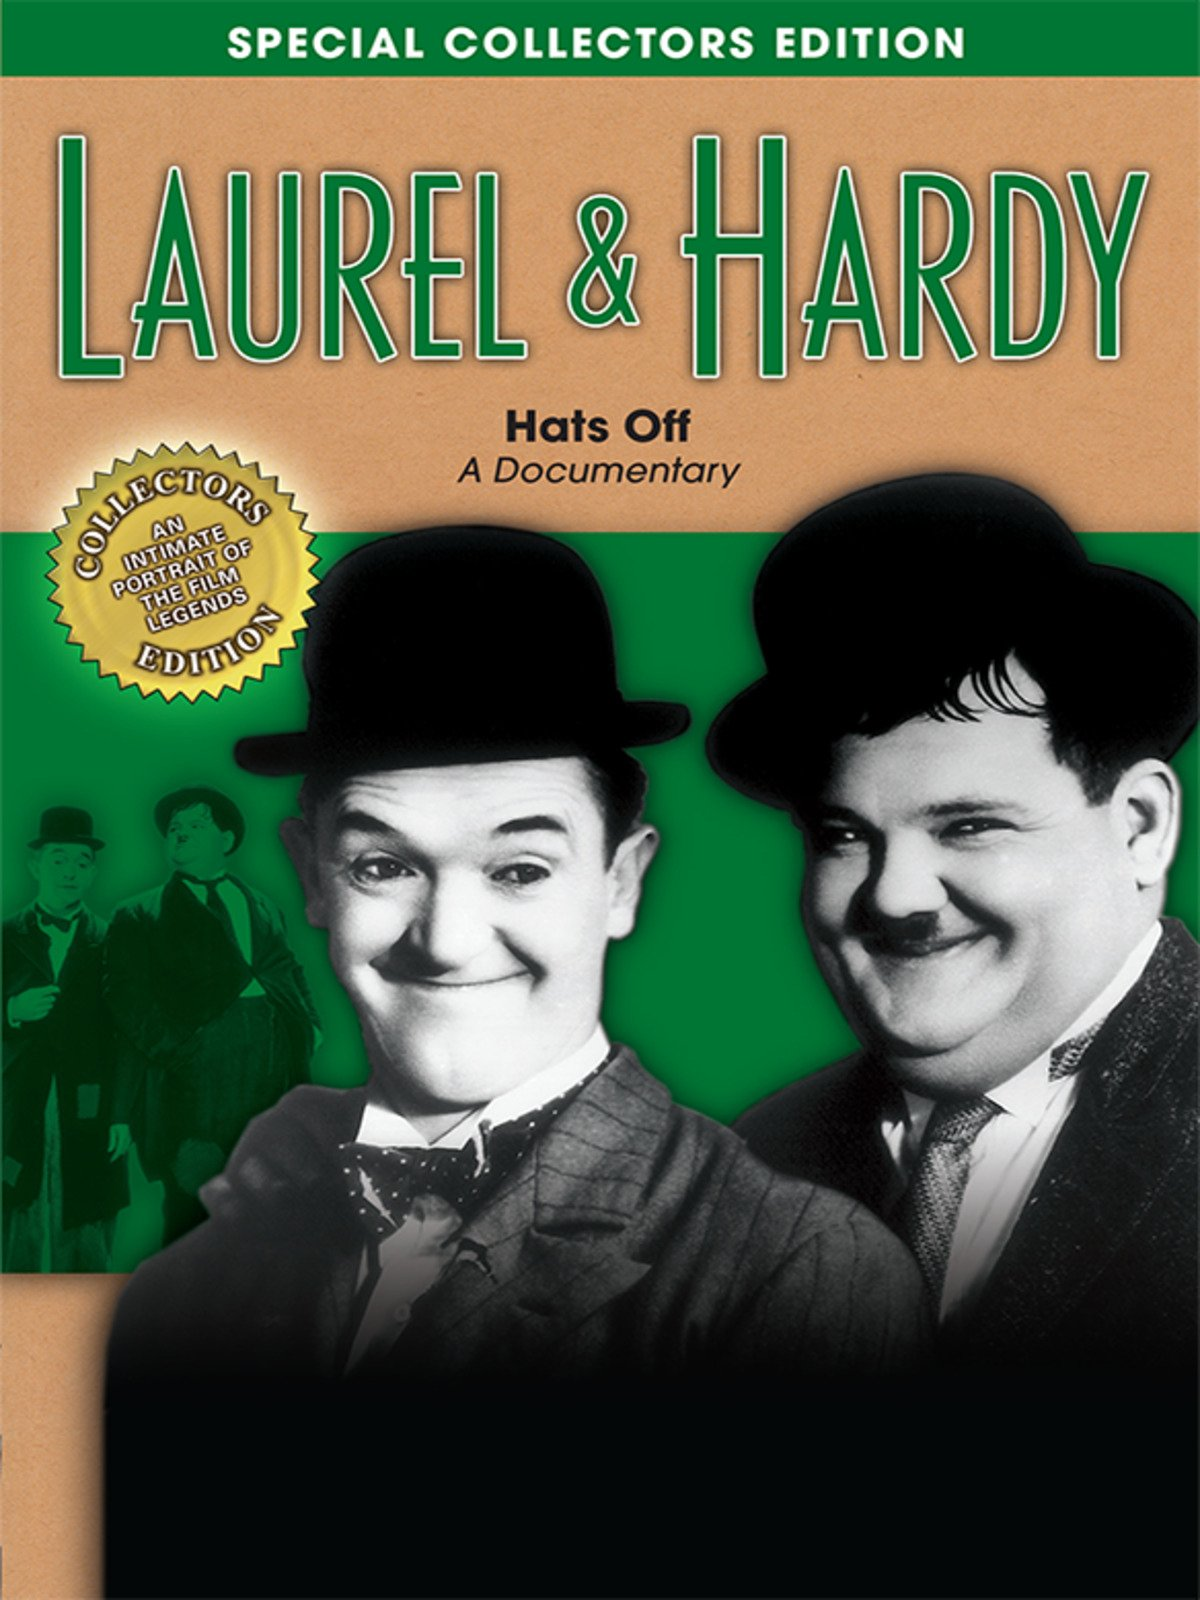 Laurel and Hardy: Hats Off on Amazon Prime Video UK